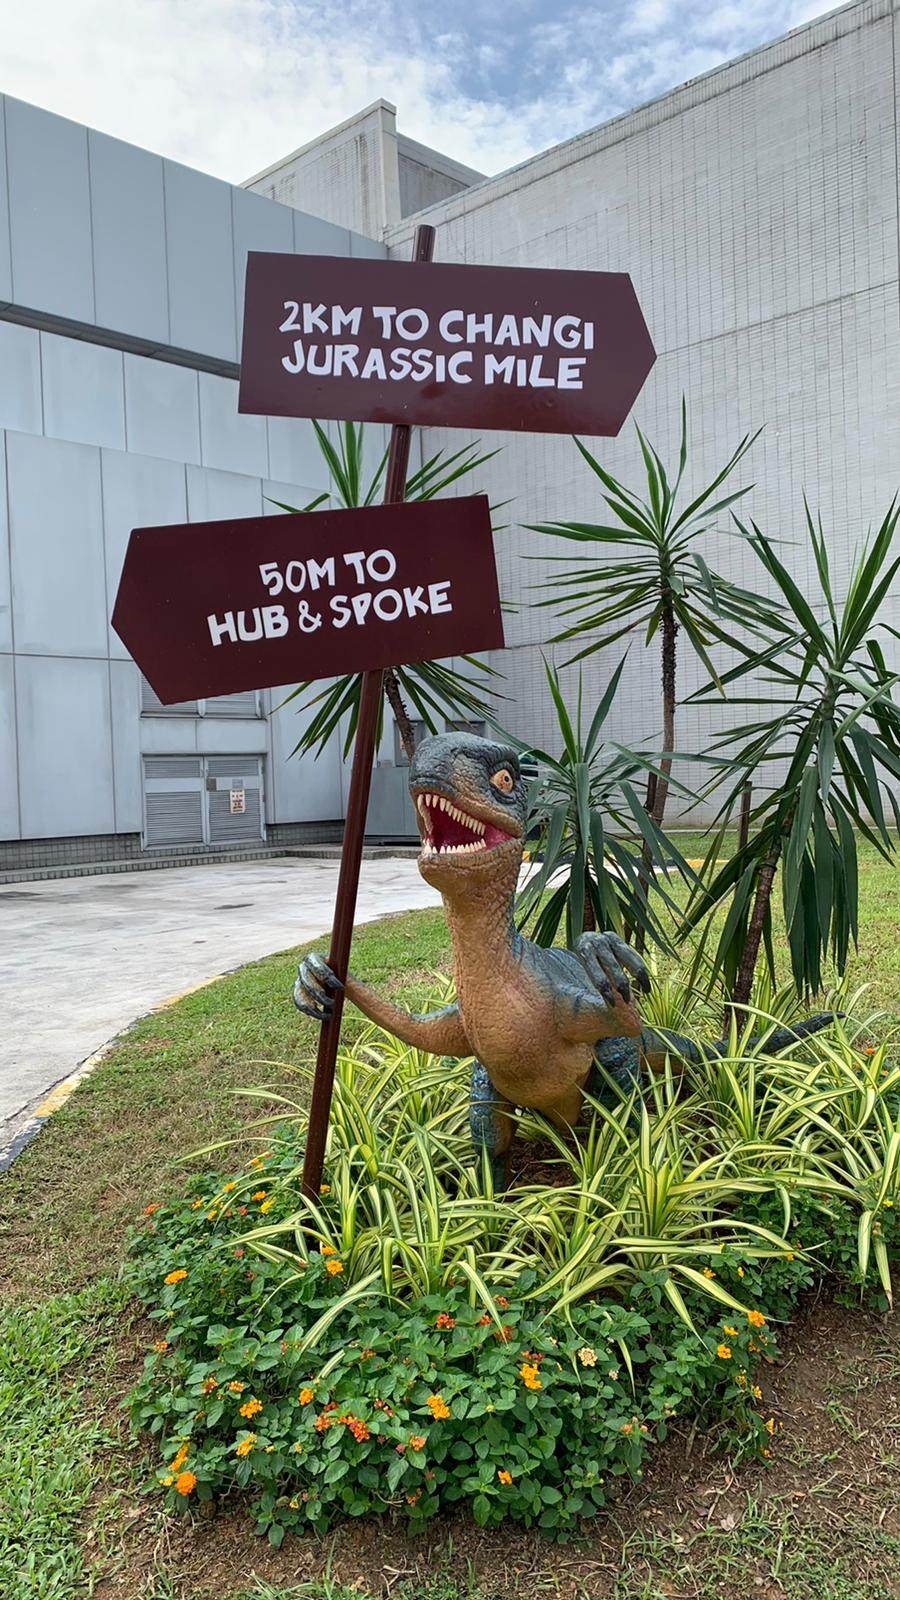 Experience a Pre-historic Journey at Changi Jurassic Mile!